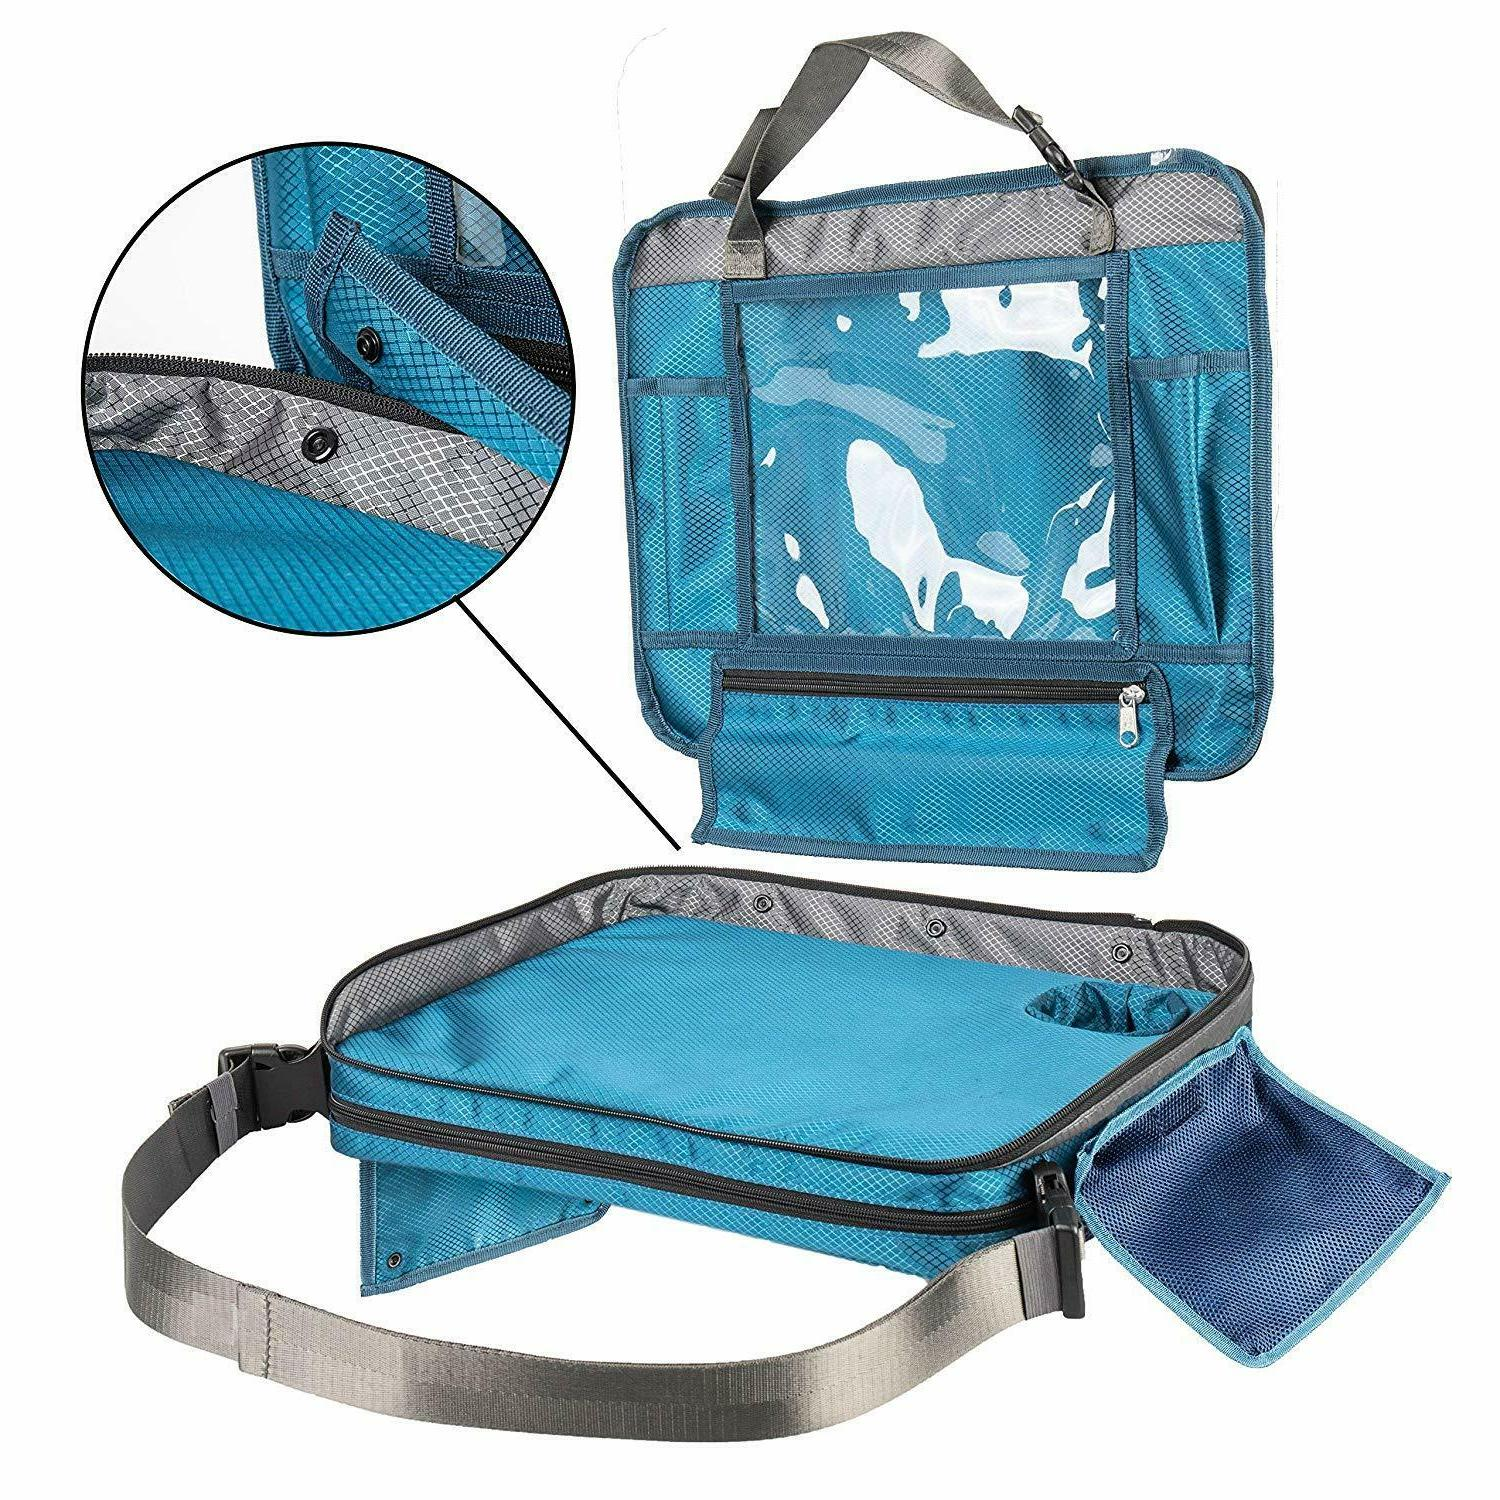 Kids Travel Tray for Car Seat. in Lap Desk, Organizer,